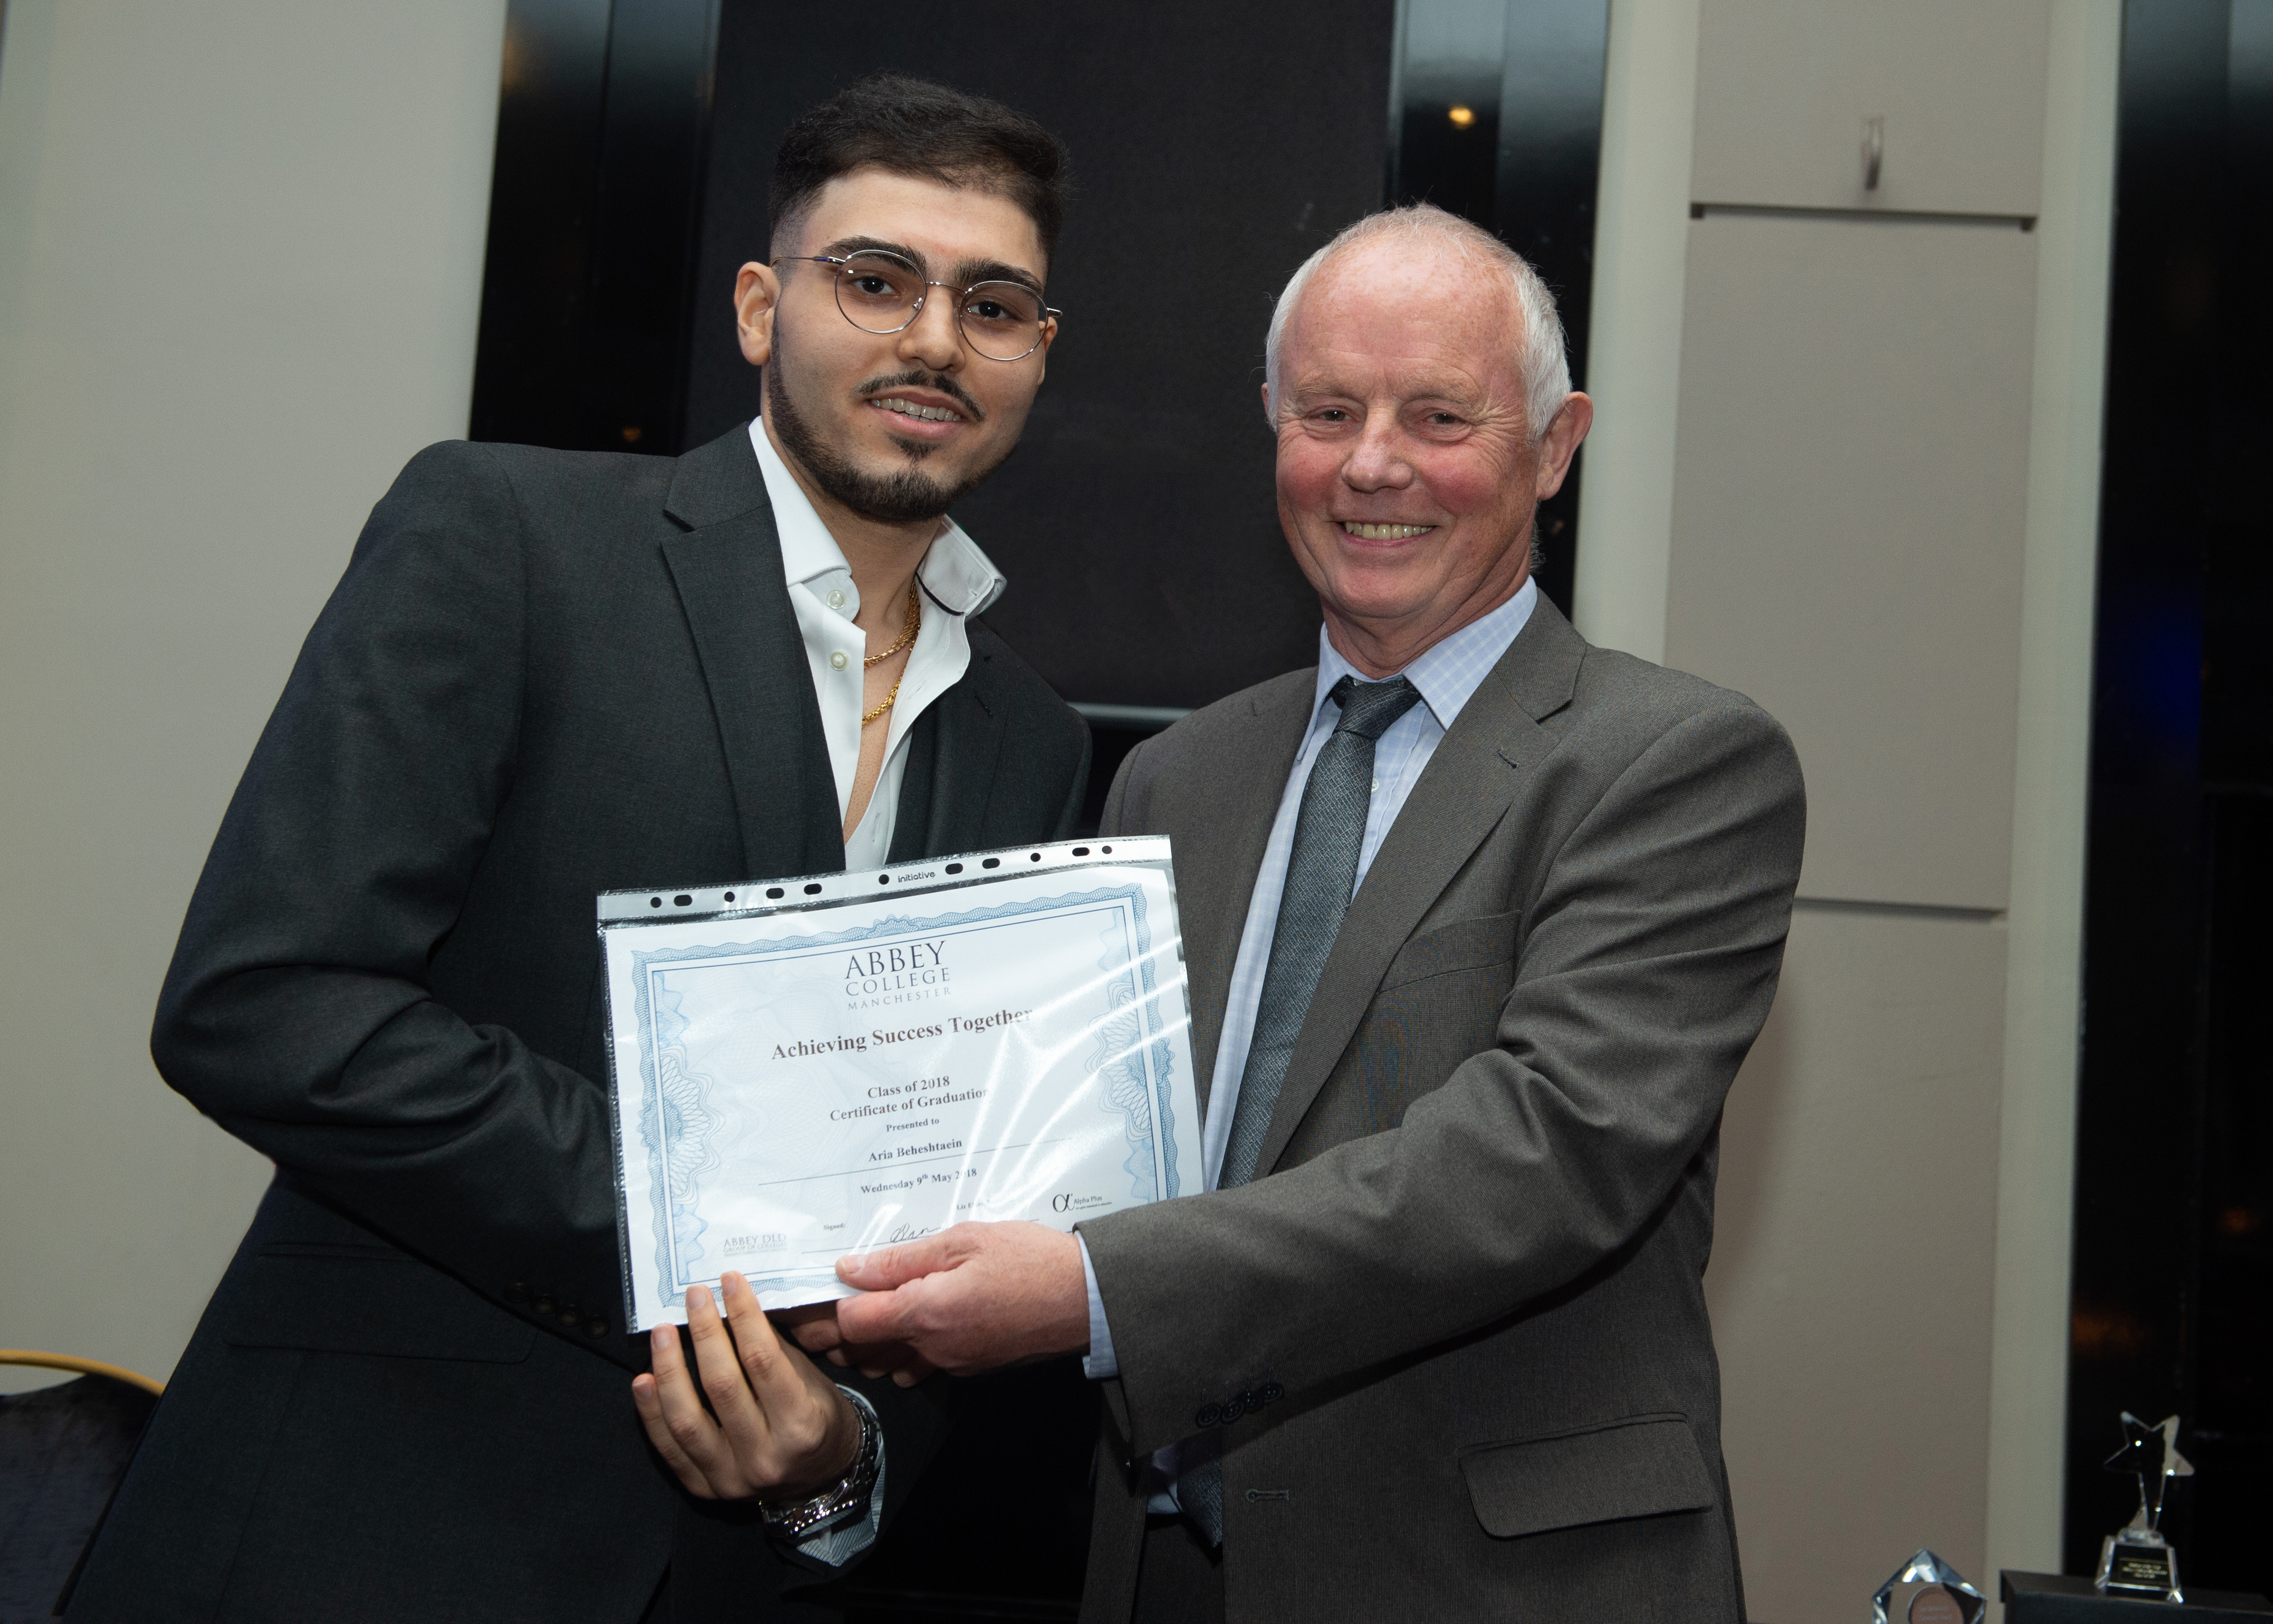 Aria Beheshtaein is one of the students to celebrate success on the IFP at Abbey College Manchester